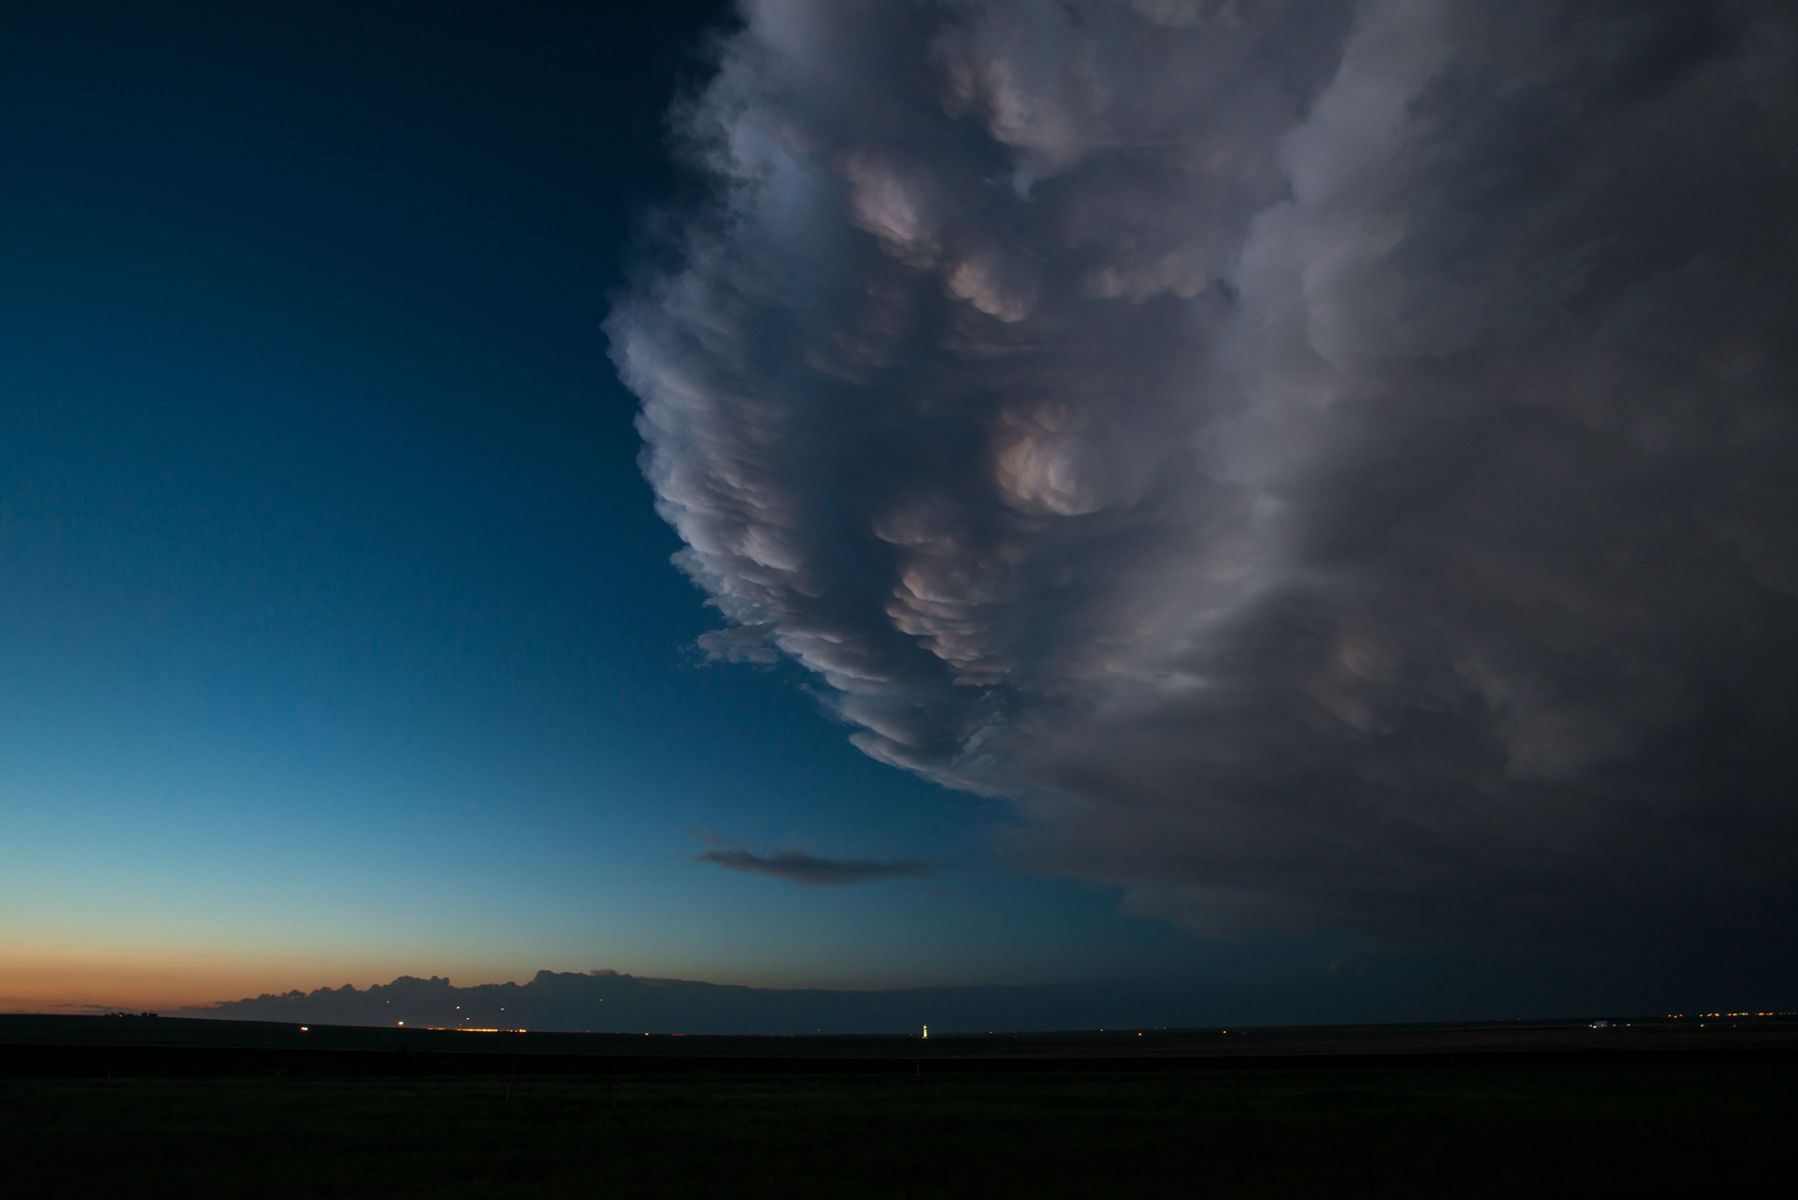 June 5, 2014 - East of Denver, Colorado